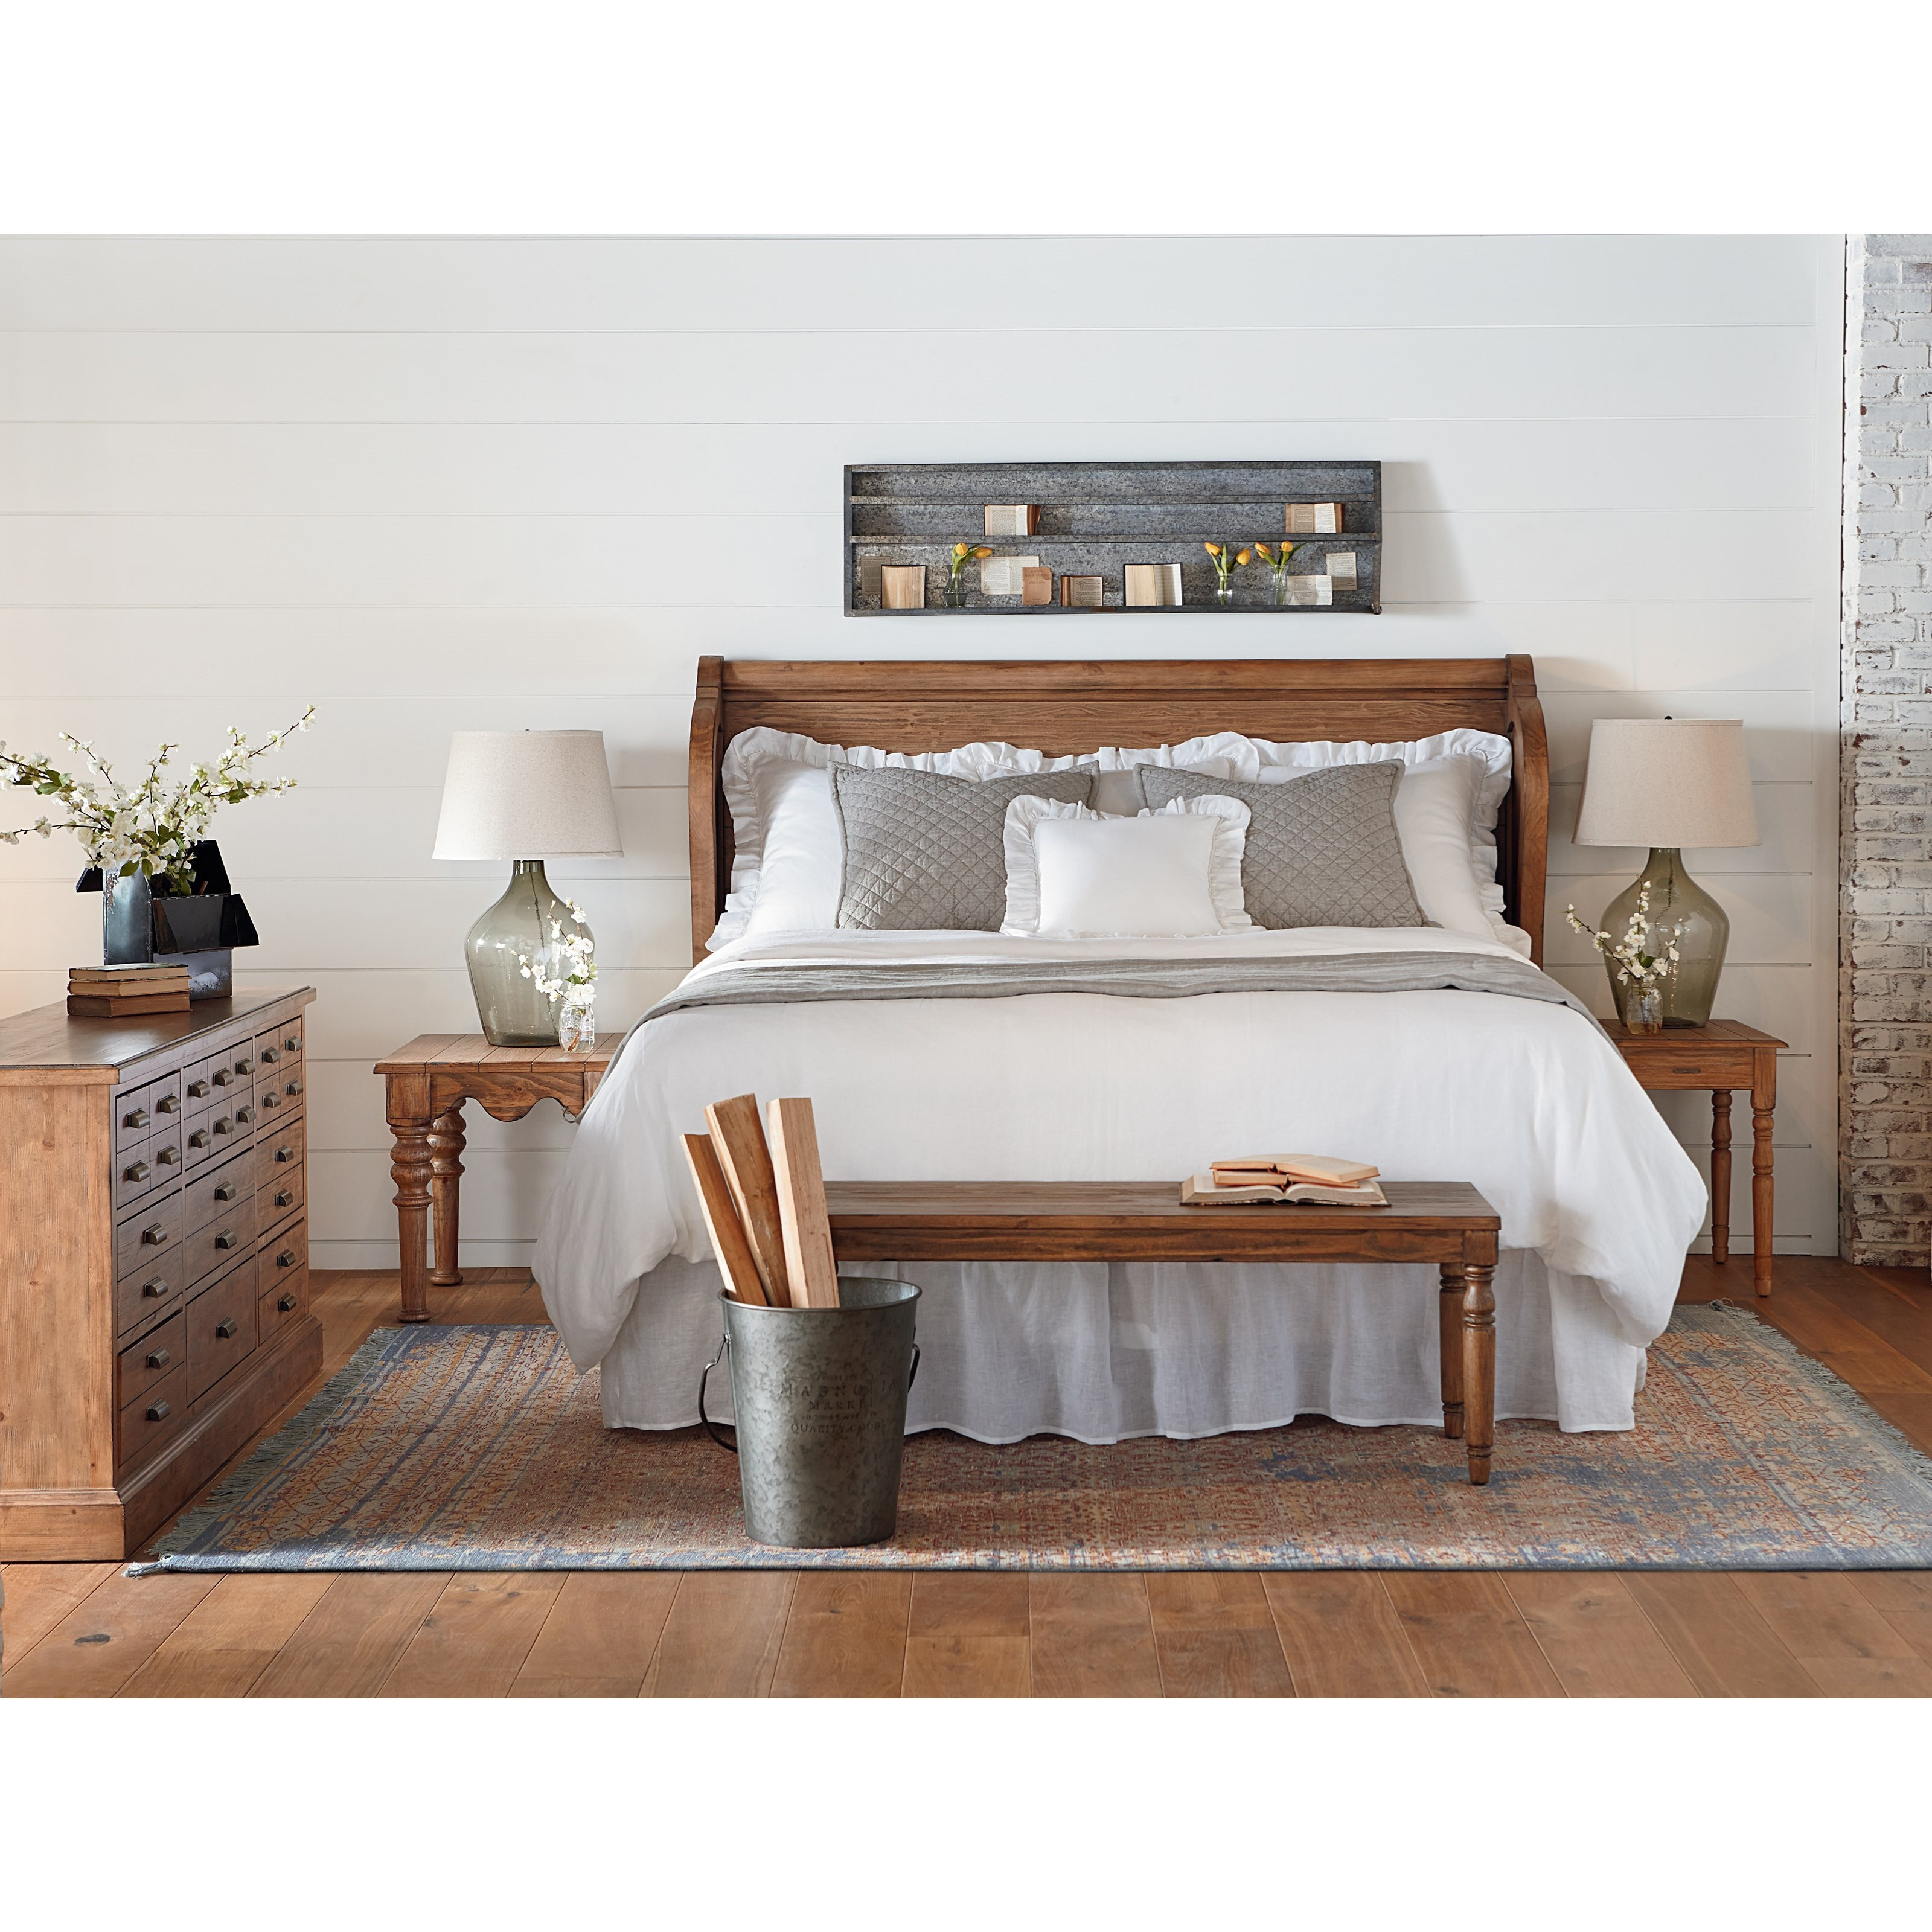 magnolia home joanna gaines farmhouse queen bedroom group products color bench accent table groups nate berkus gold outdoor furniture coast room essentials bedding wire side